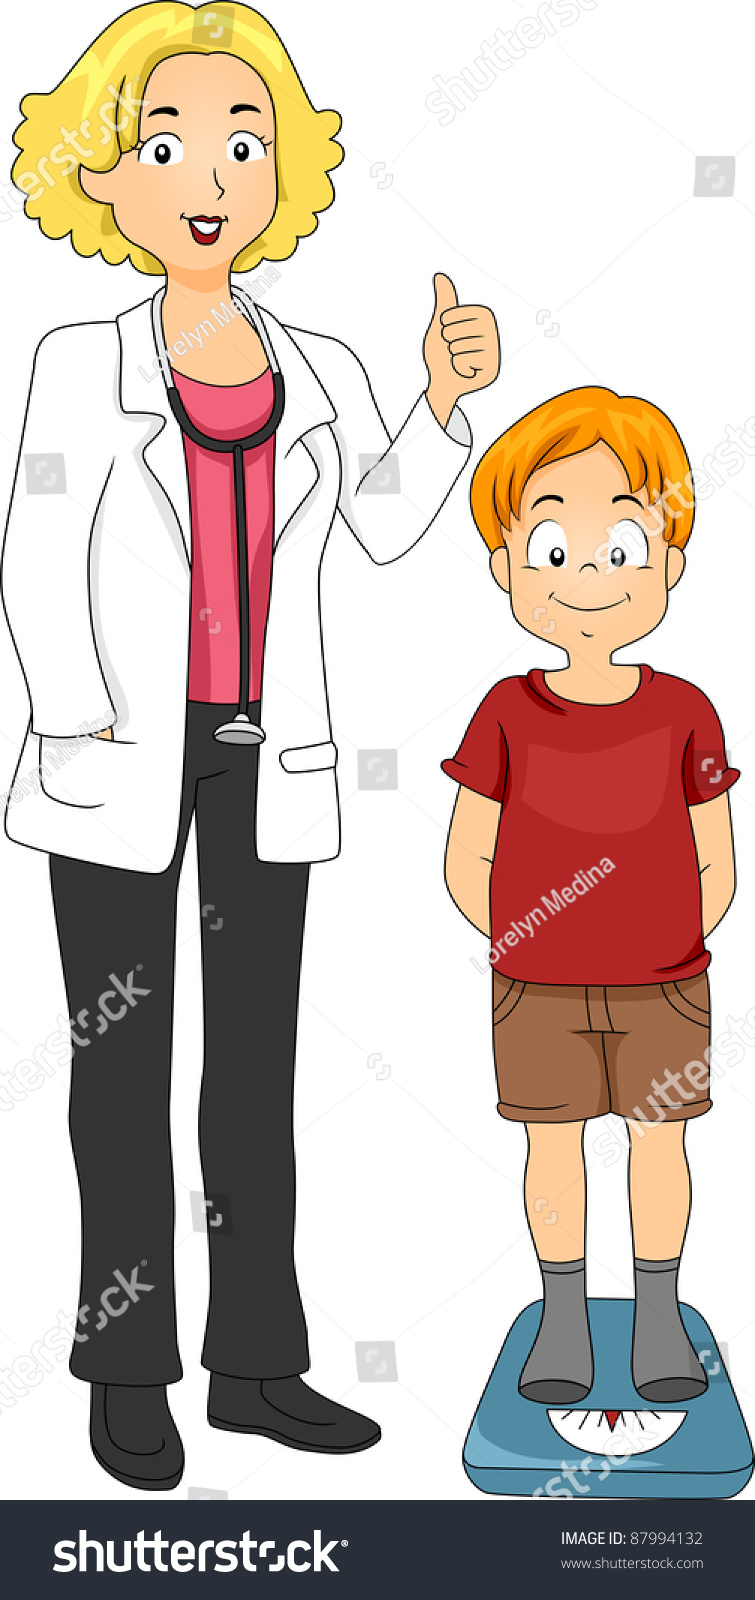 Measuring Weight Cartoon Illustration Of A Kid ...